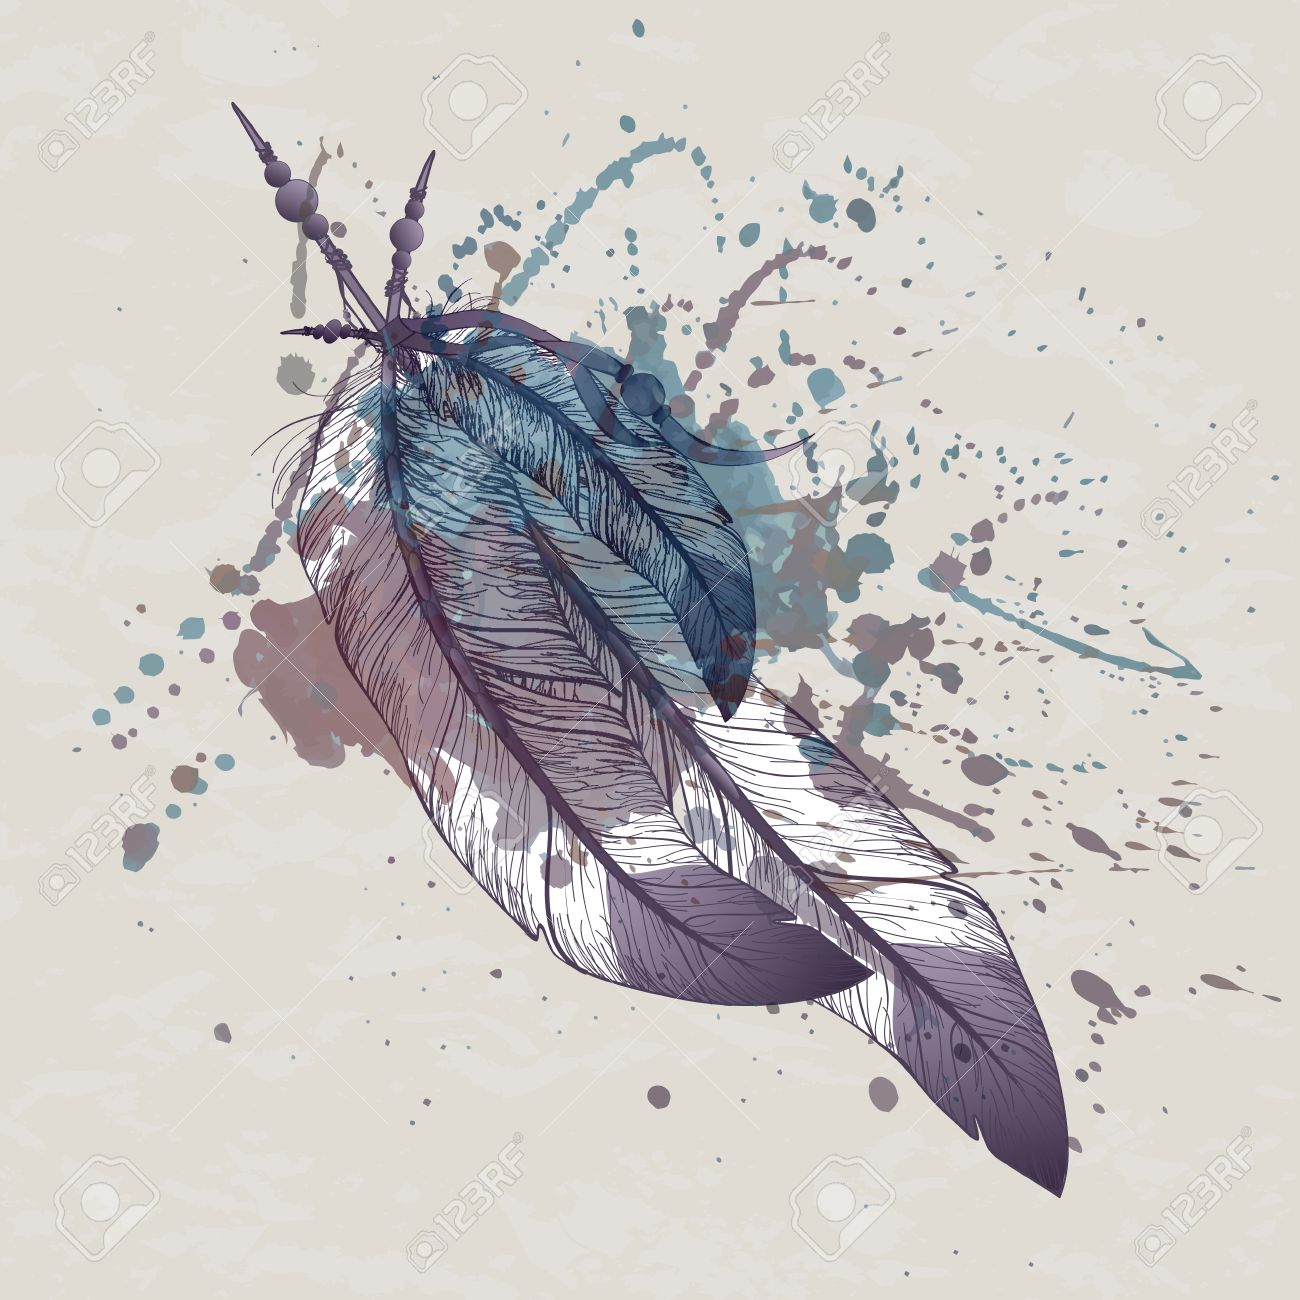 1300x1300 Vector Illustration Of Eagle Feathers With Watercolor Splash